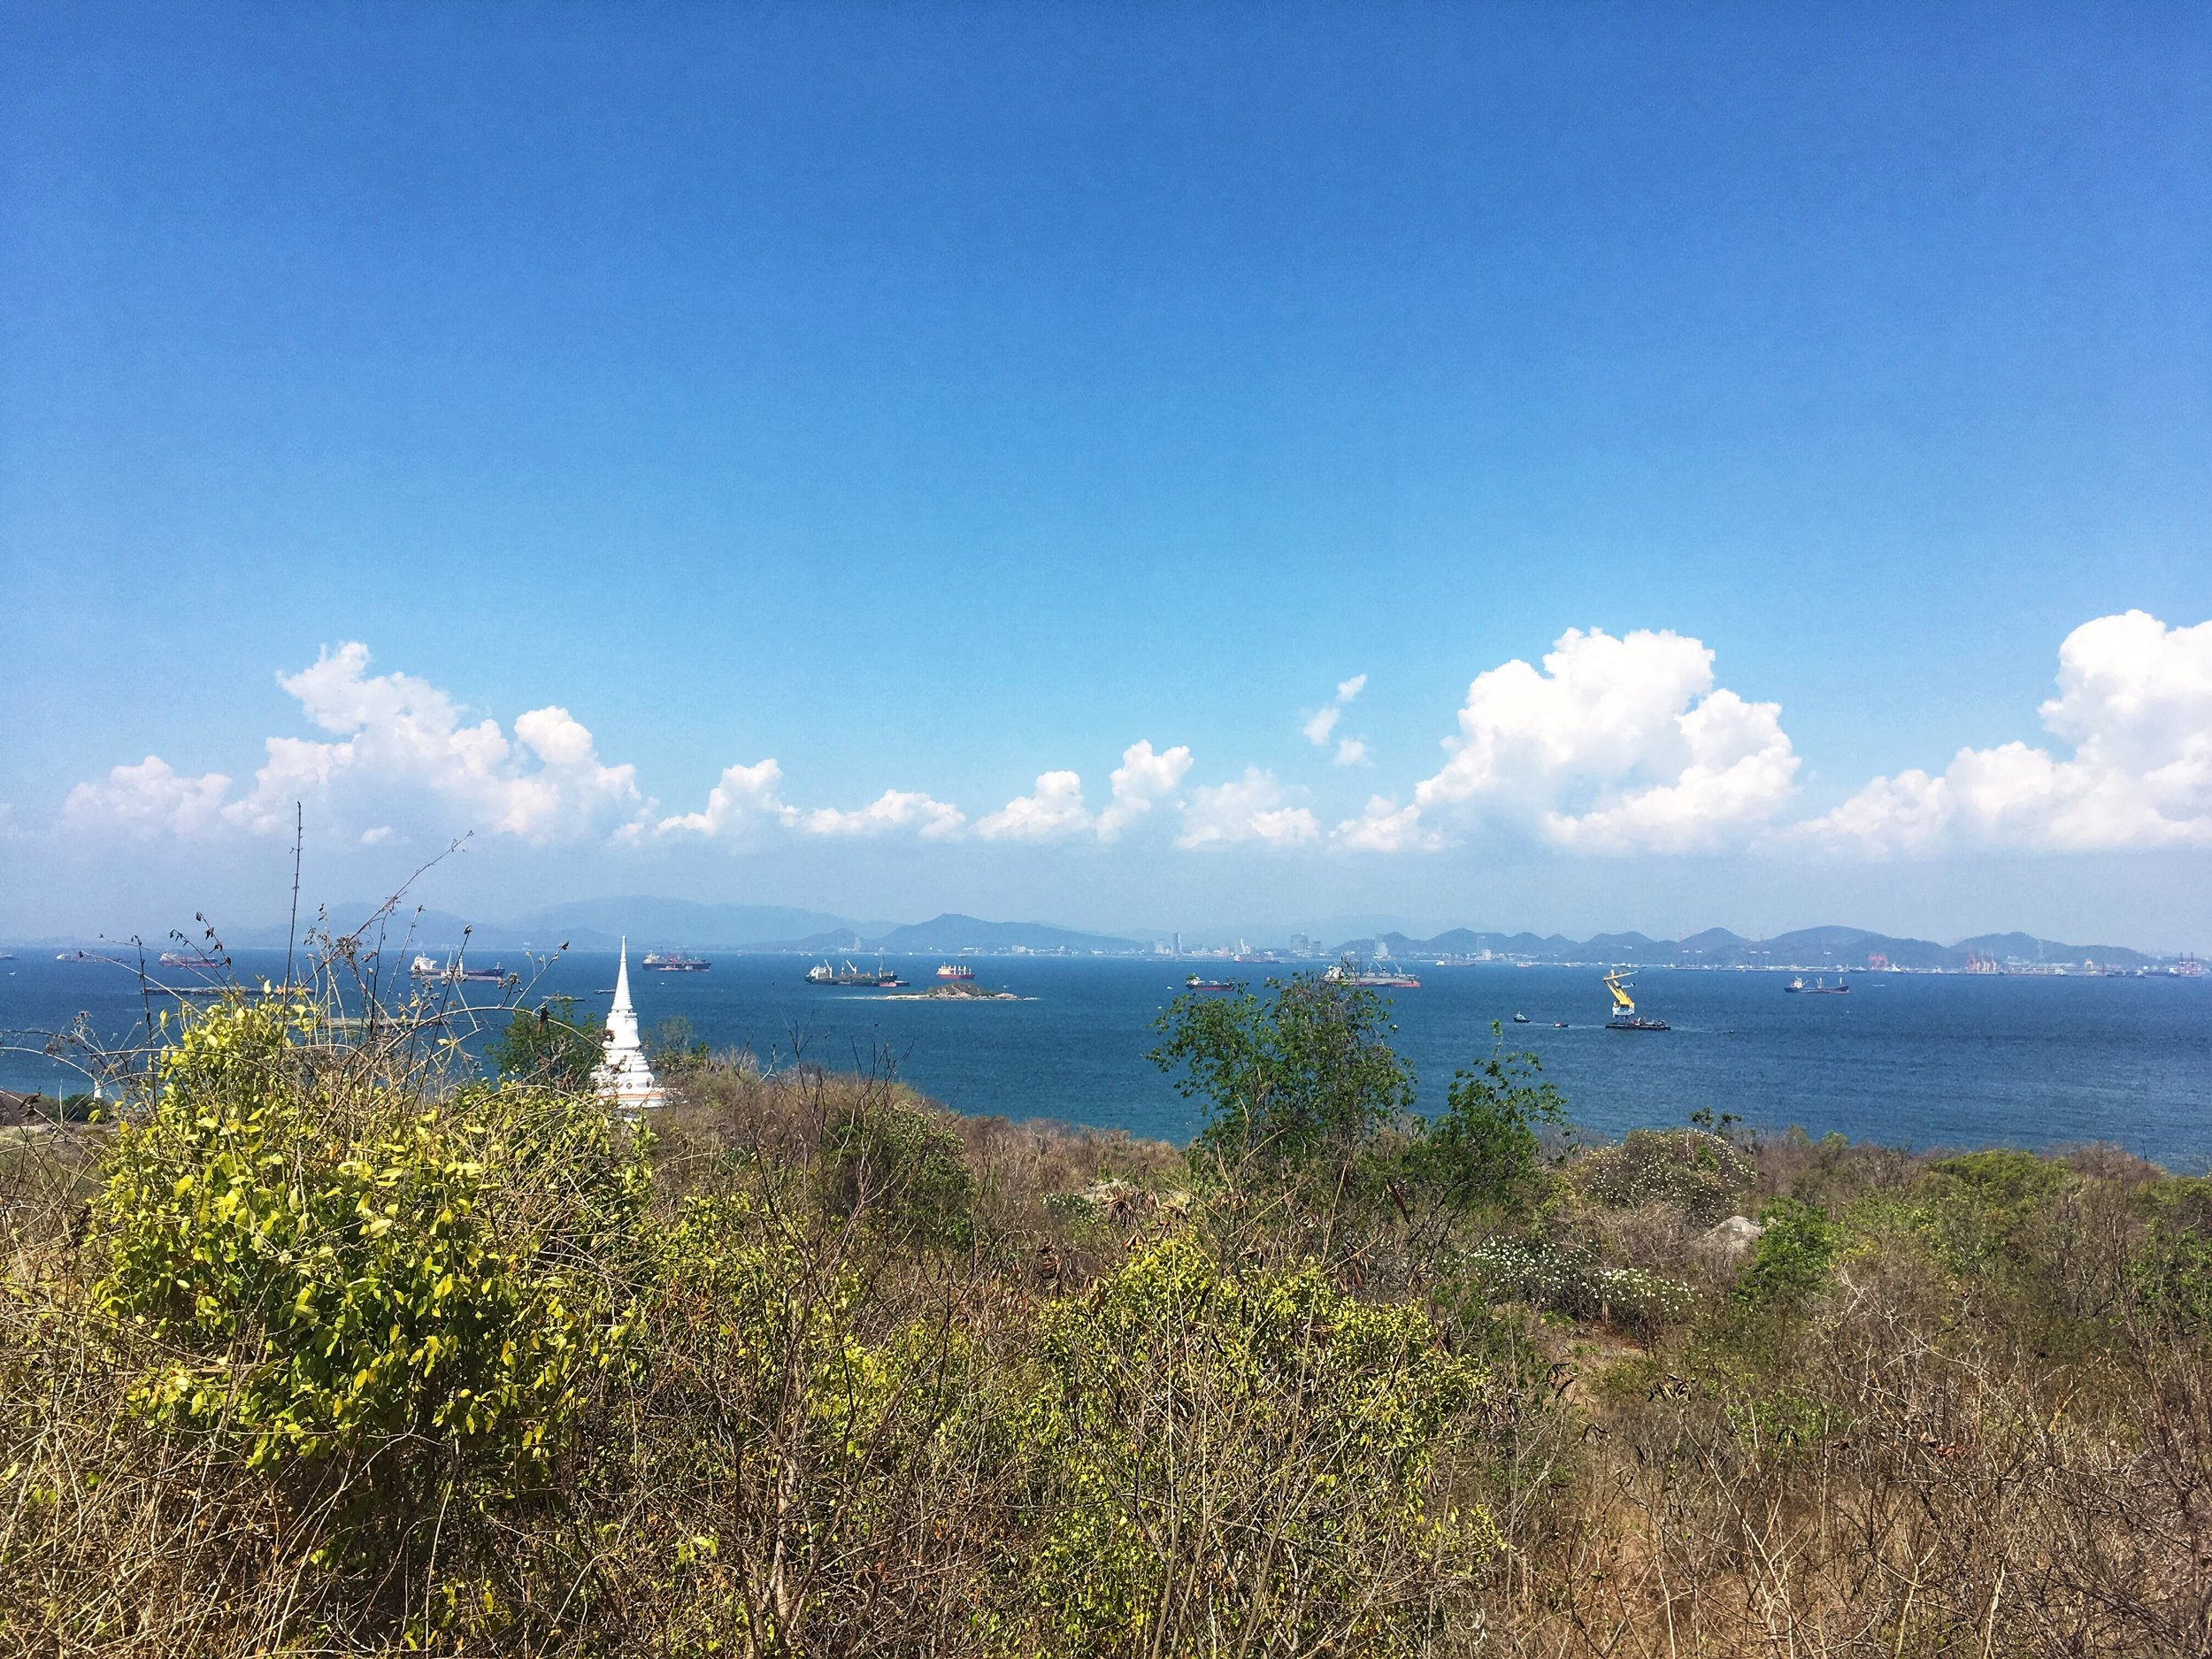 the view from the Koh Sichang viewpoint